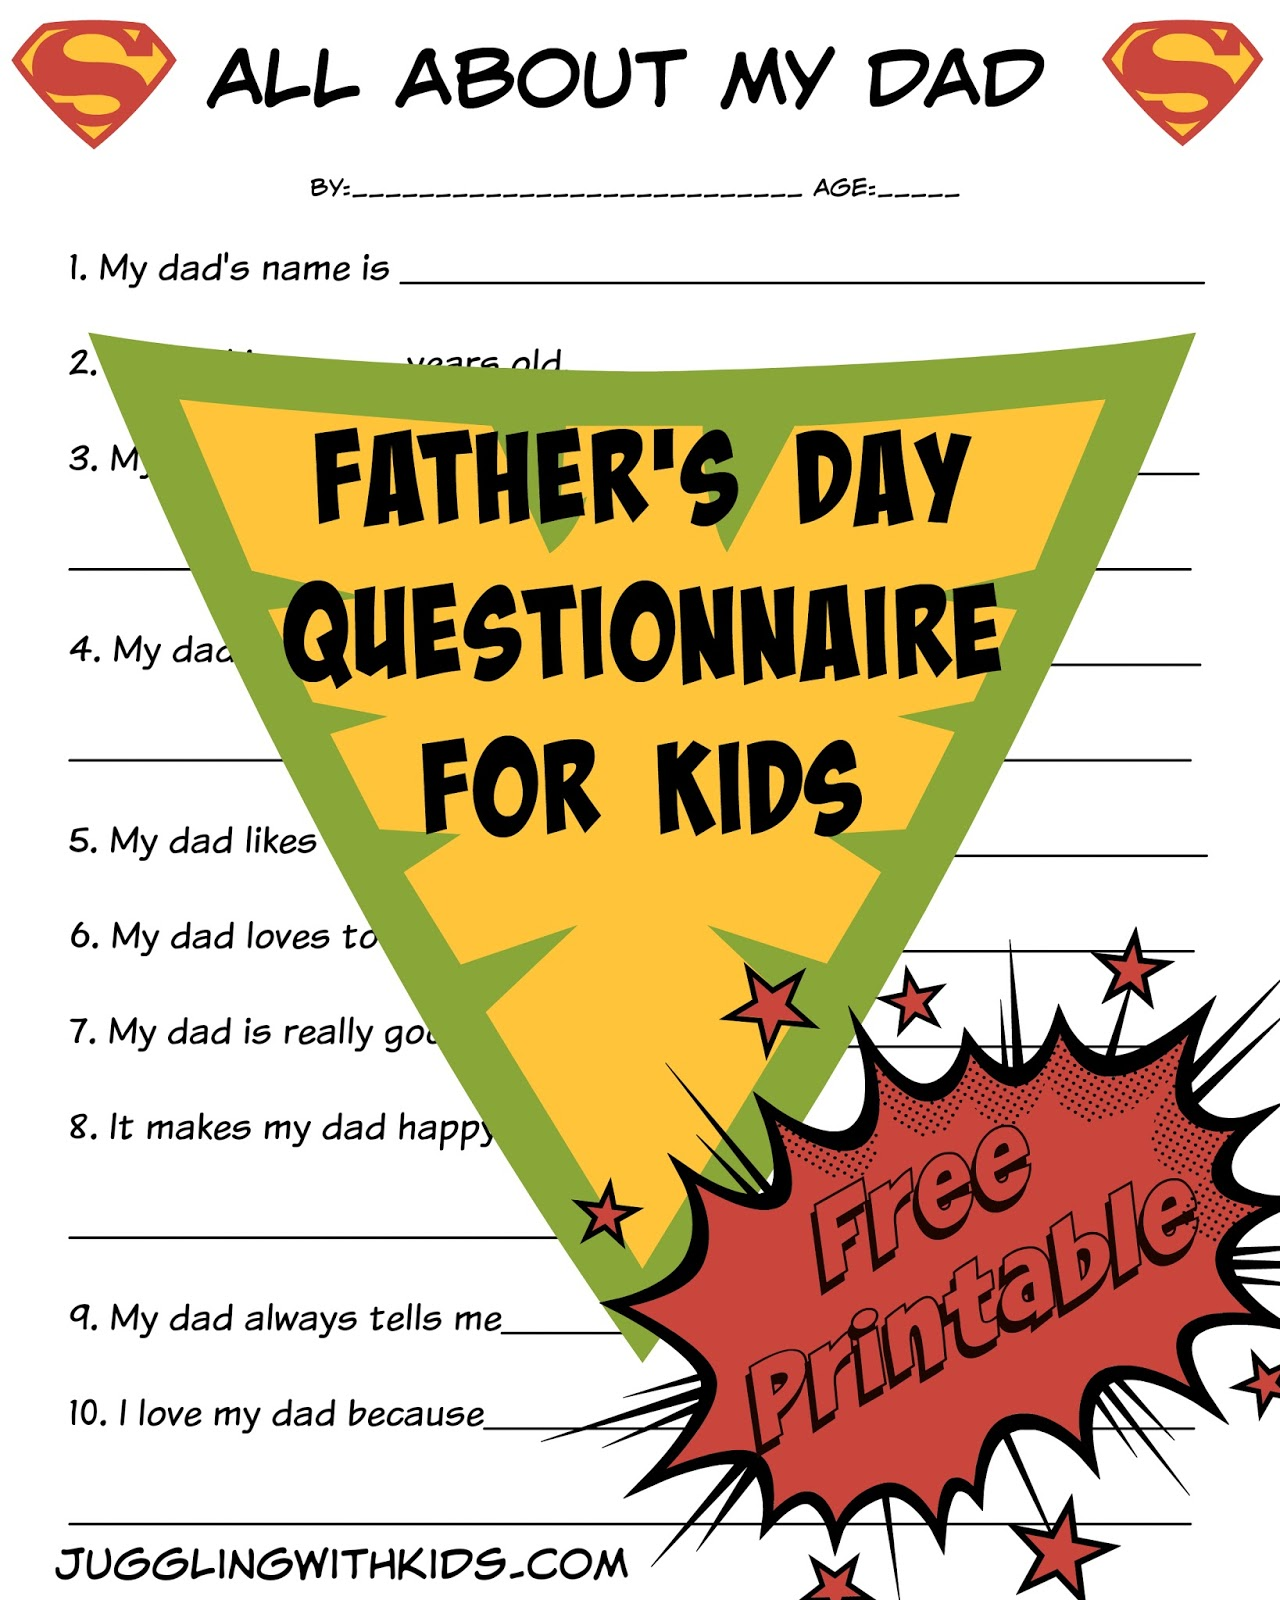 photo relating to Father's Day Questionnaire Free Printable identify Fathers Working day Questionnaire for Little ones Juggling With Children